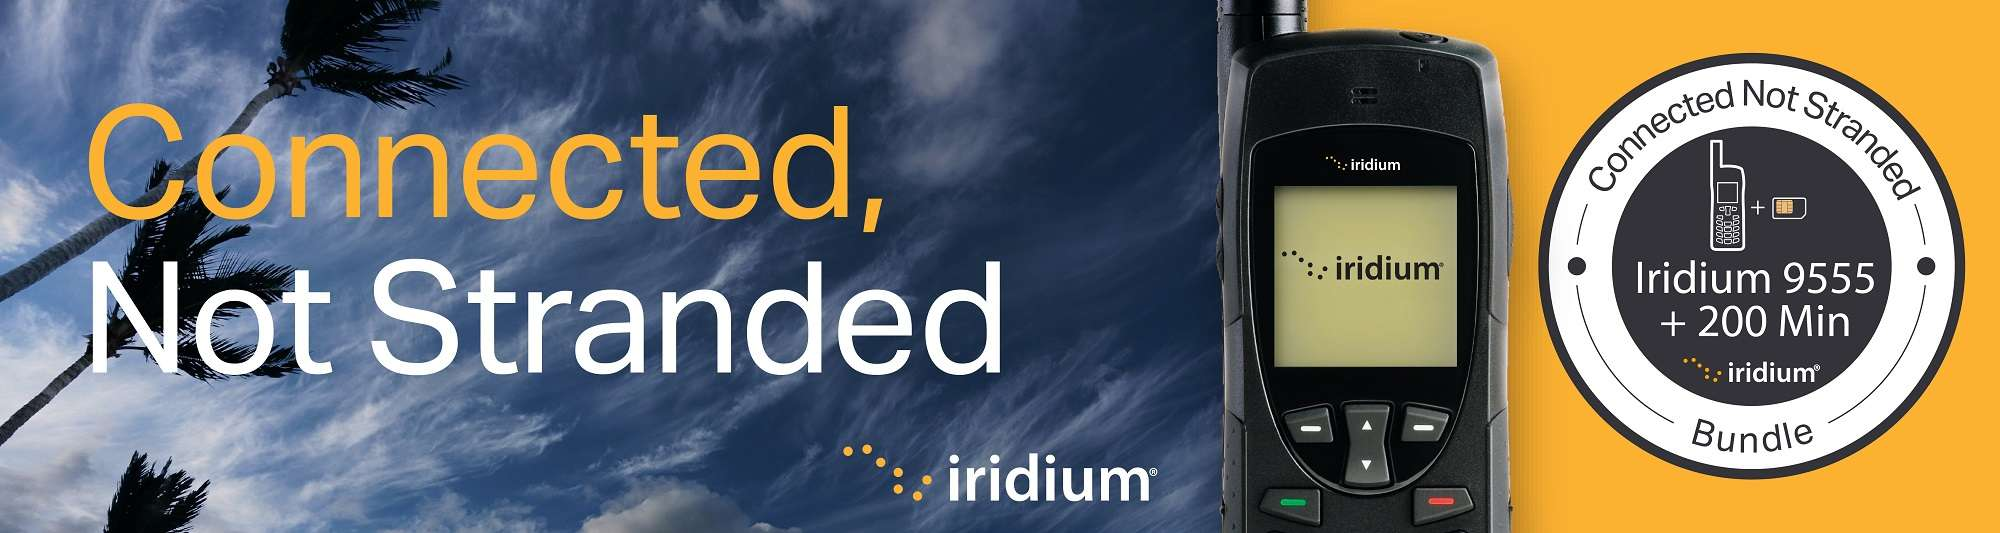 Iridium Connected Not Stranded Banner